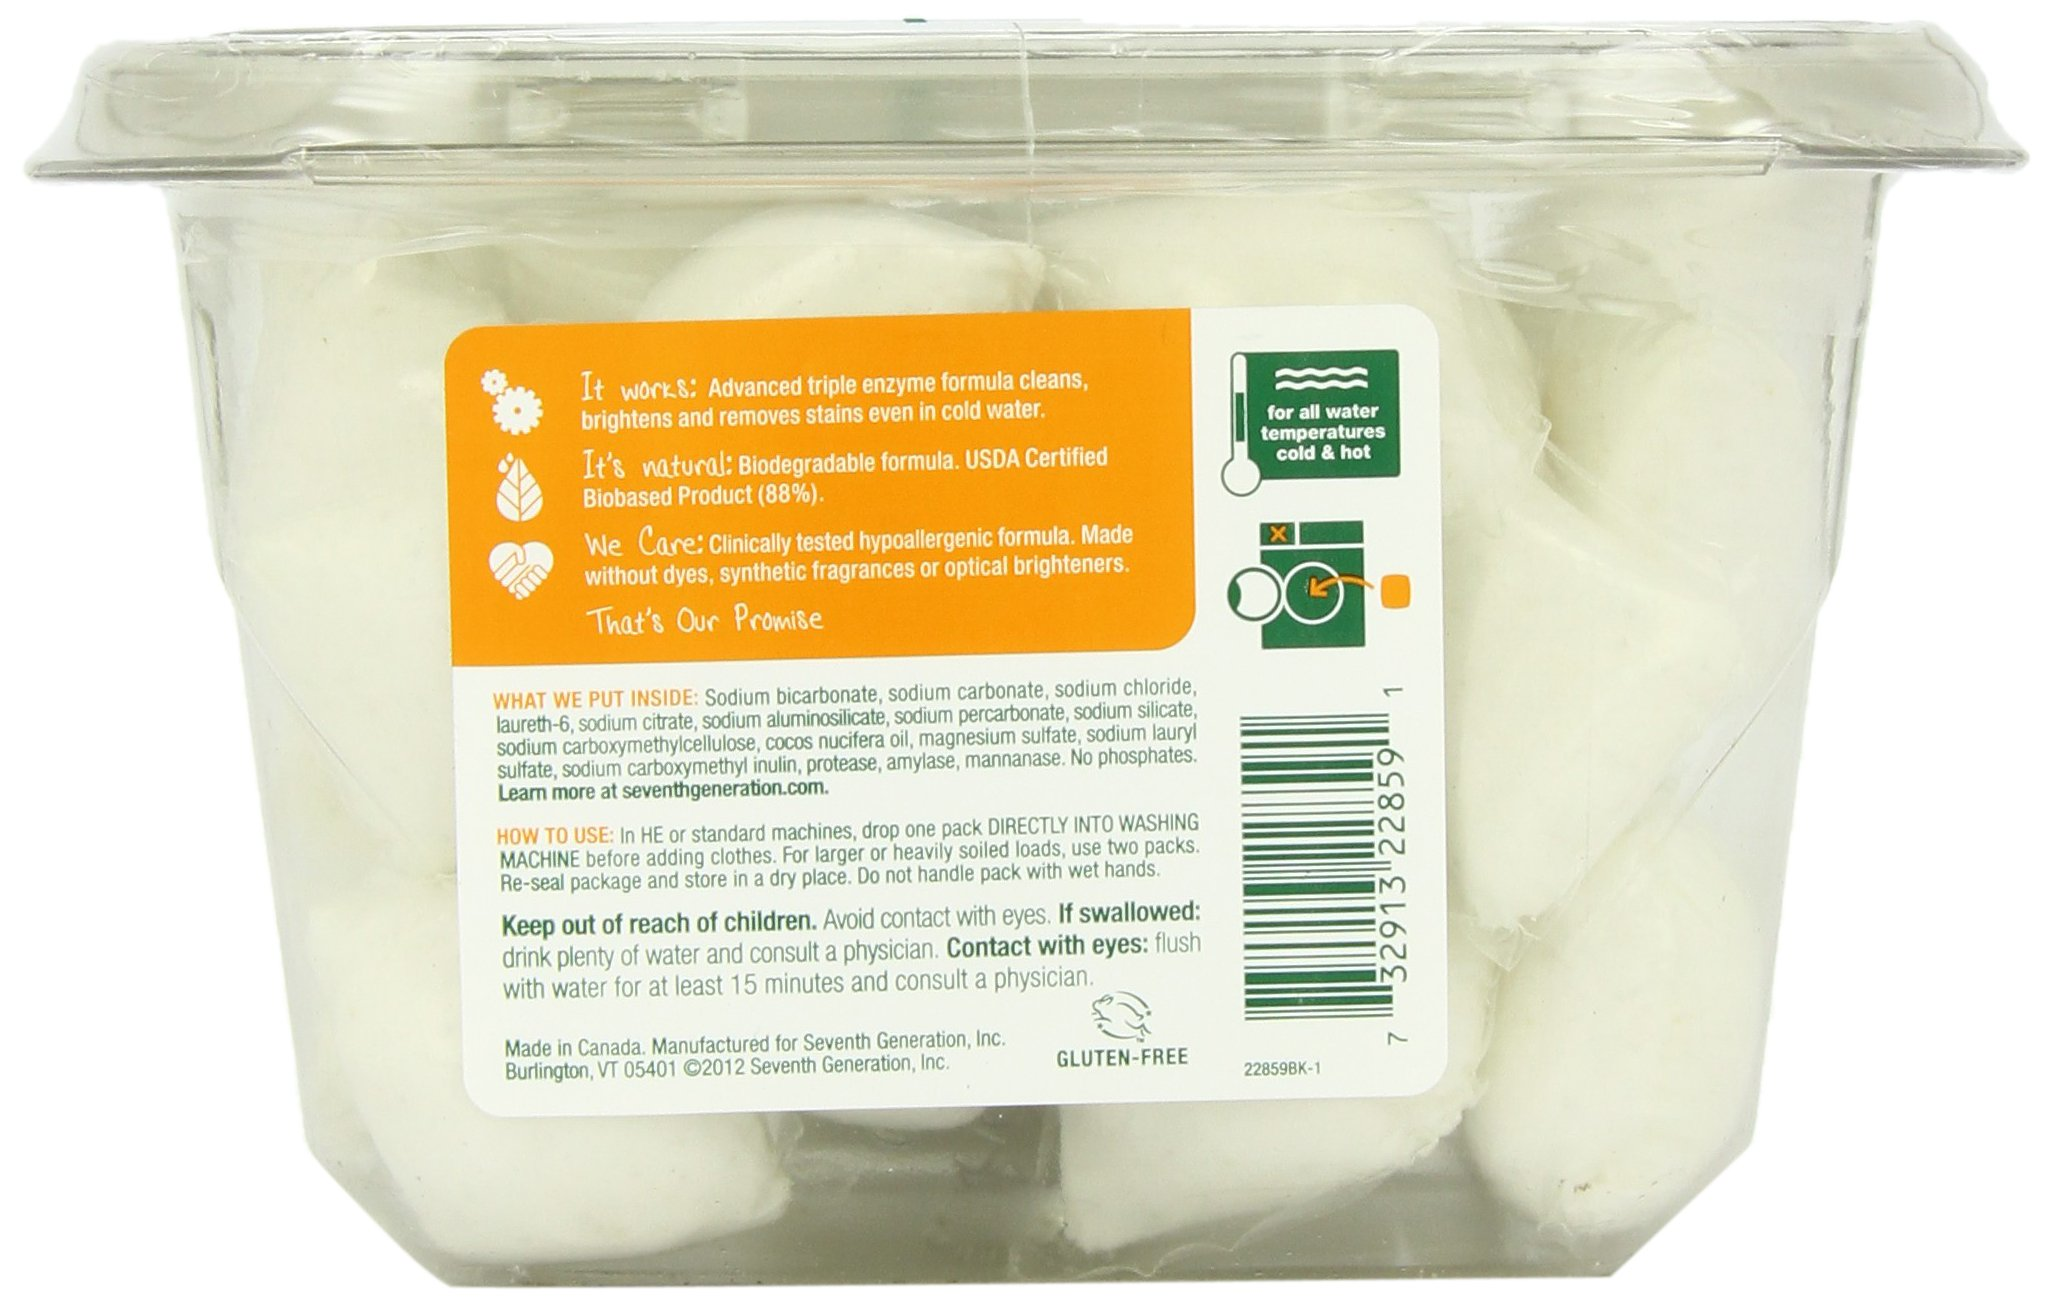 Seventh Generation Natural Laundry Detergent Packs, Free and Clear, 30 Count (pack of 2) by Seventh Generation (Image #2)